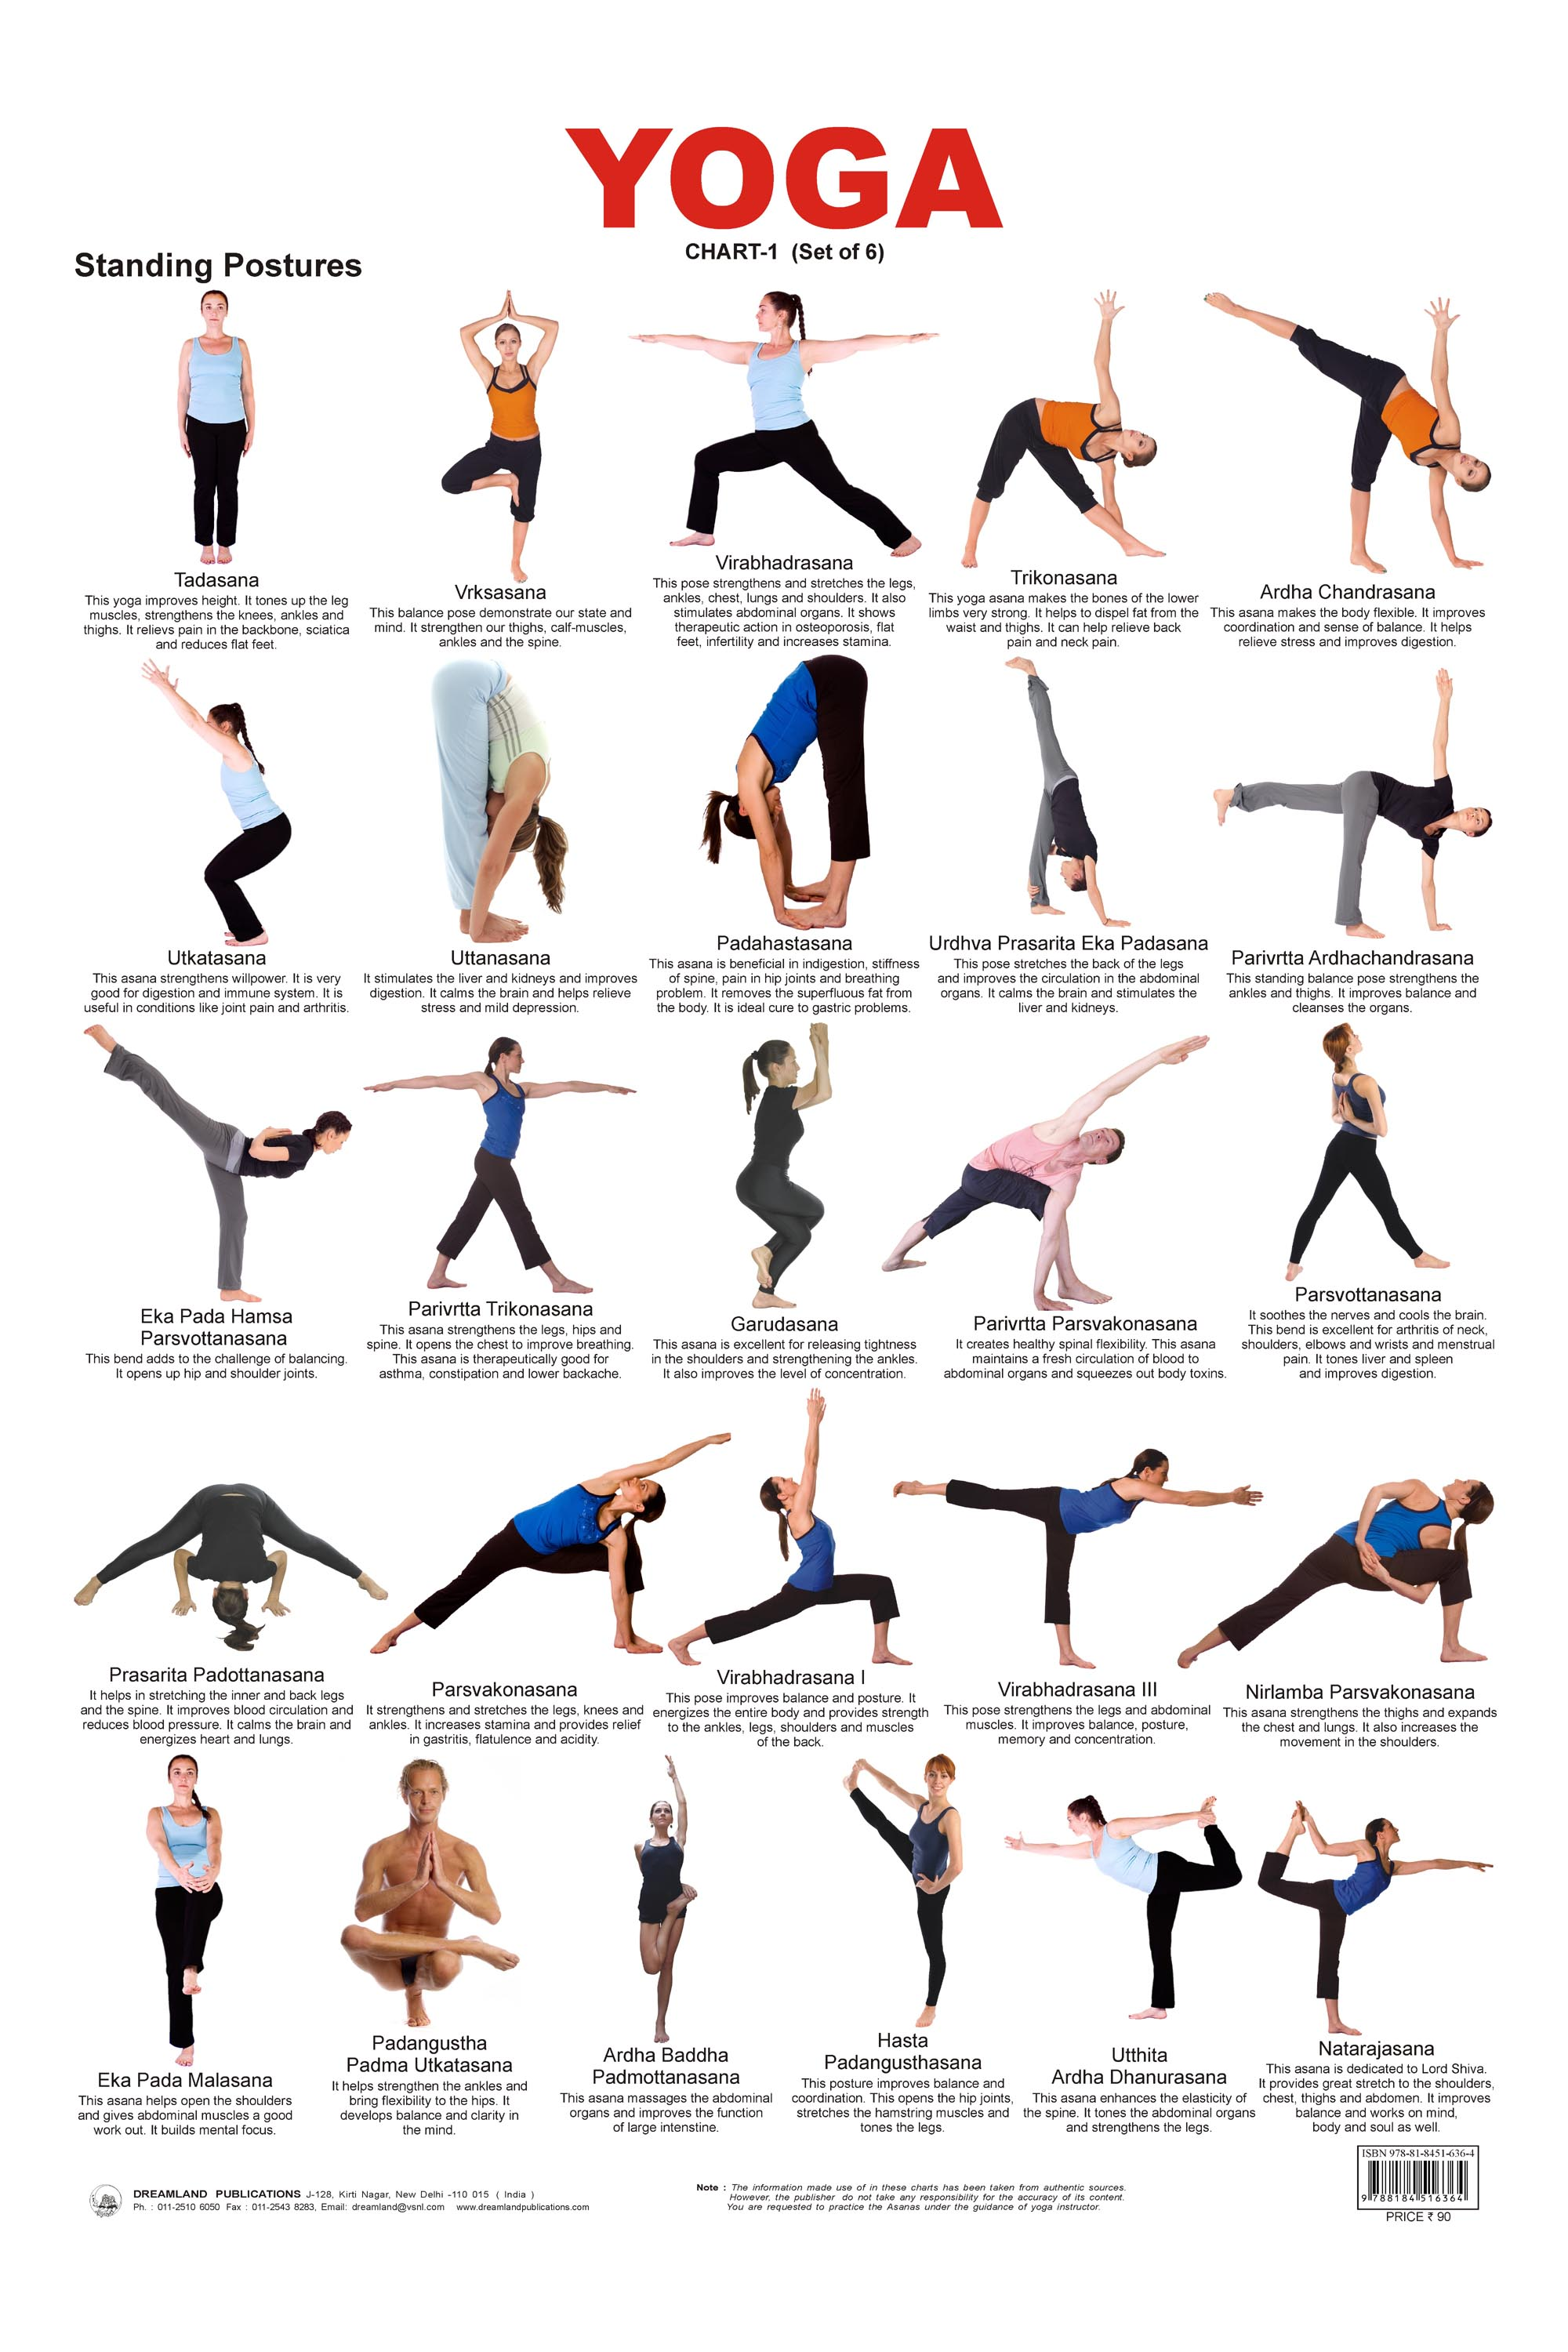 yoga poses picture 0JBvKonv